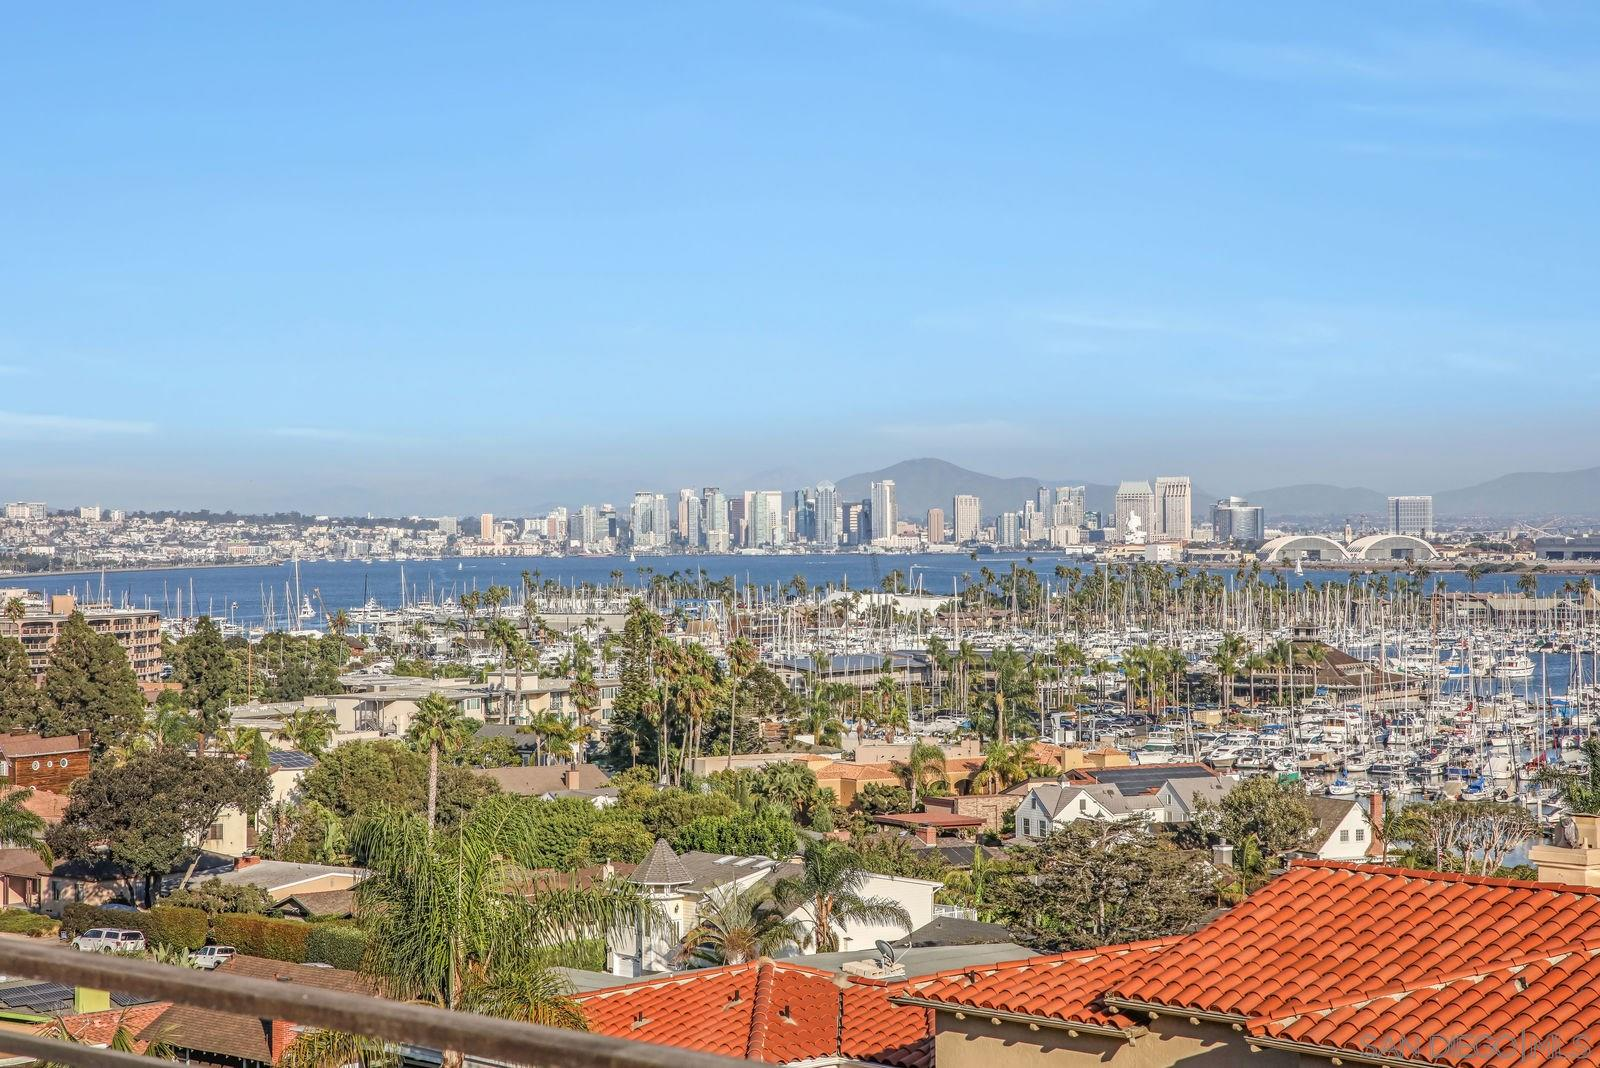 Welcome home to some of the best unobstructed views in Point Loma! Panoramic views of San Diego Bay, Coronado, Downtown & beyond from living room, kitchen, master & 2 bedrooms.  Indoor-outdoor living at its best with over 630 sq.ft. of view decks.  Spacious open-concept main living area features kitchen w/ large island, Dacor gas cooktop & dual ovens. Home offers elevator from garage to main living level. Upstairs is 3 beds and 3 baths. Serene private backyard features fountain & lush landscaping.Located in the heart of La Playa just 1 block to Bessemer trail with sandy beach access as well as walking distance to San Diego and Southwestern Yacht Clubs. This home has every detail covered including Brazilian Cherry hardwood floors, new plush carpet upstairs, recessed lighting, built in speakers, elevator from garage to main living level, trash & recycling chutes to garage and laundry chute from master bath to laundry room.  Garage features epoxy flooring and 2 full walls of built-in storage.